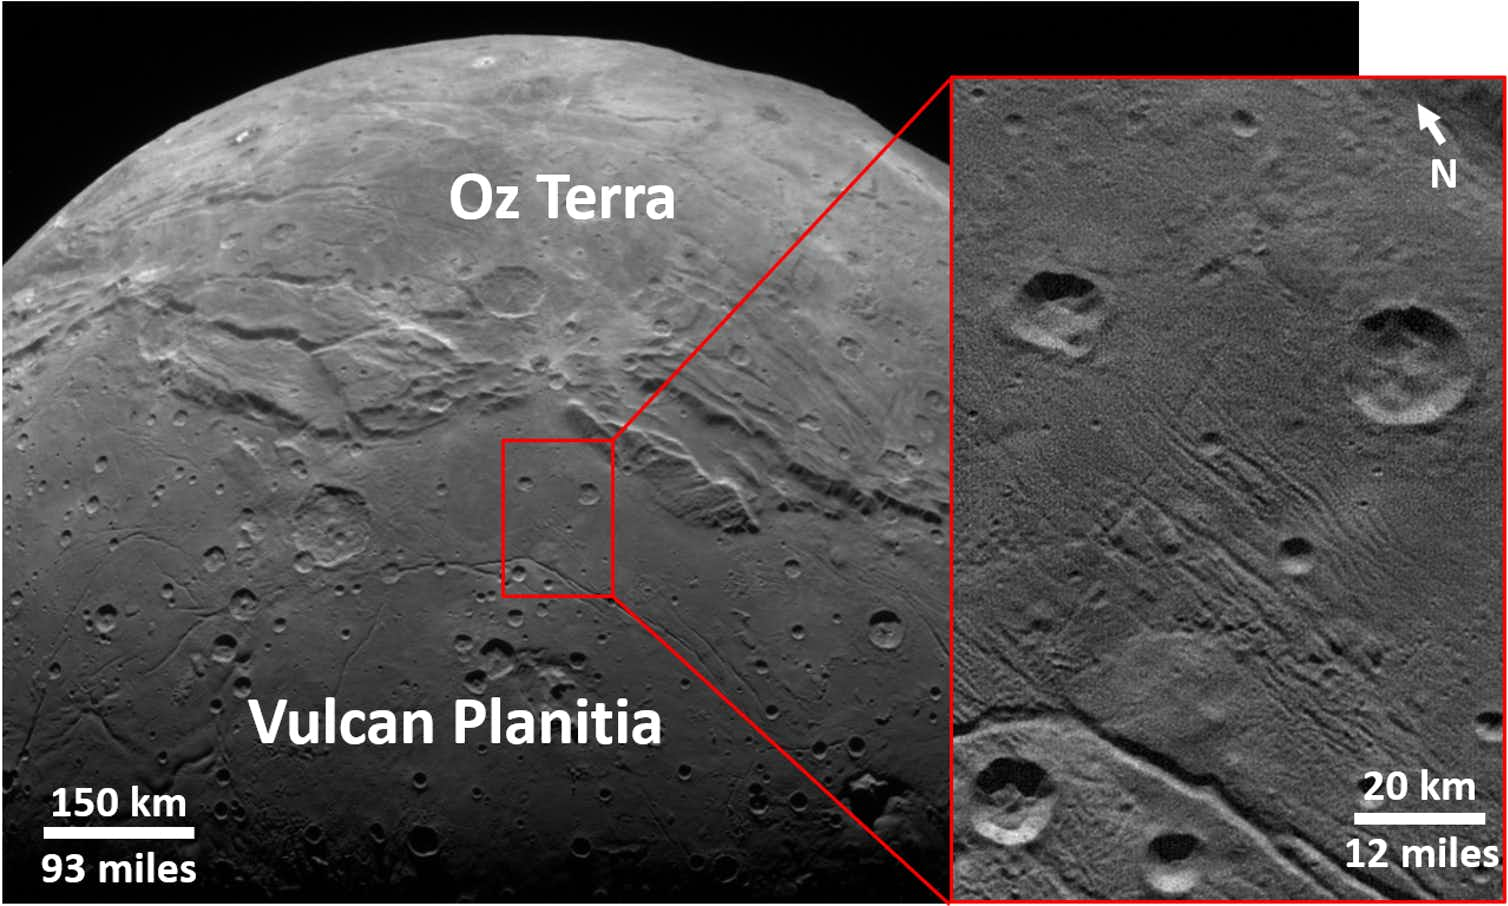 Details of the ancient cratered surface of Charon's Vulcan Planitia. Photo credit: NASA/Johns Hopkins University Applied Physics Laboratory/Southwest Research Institute/K. Singer